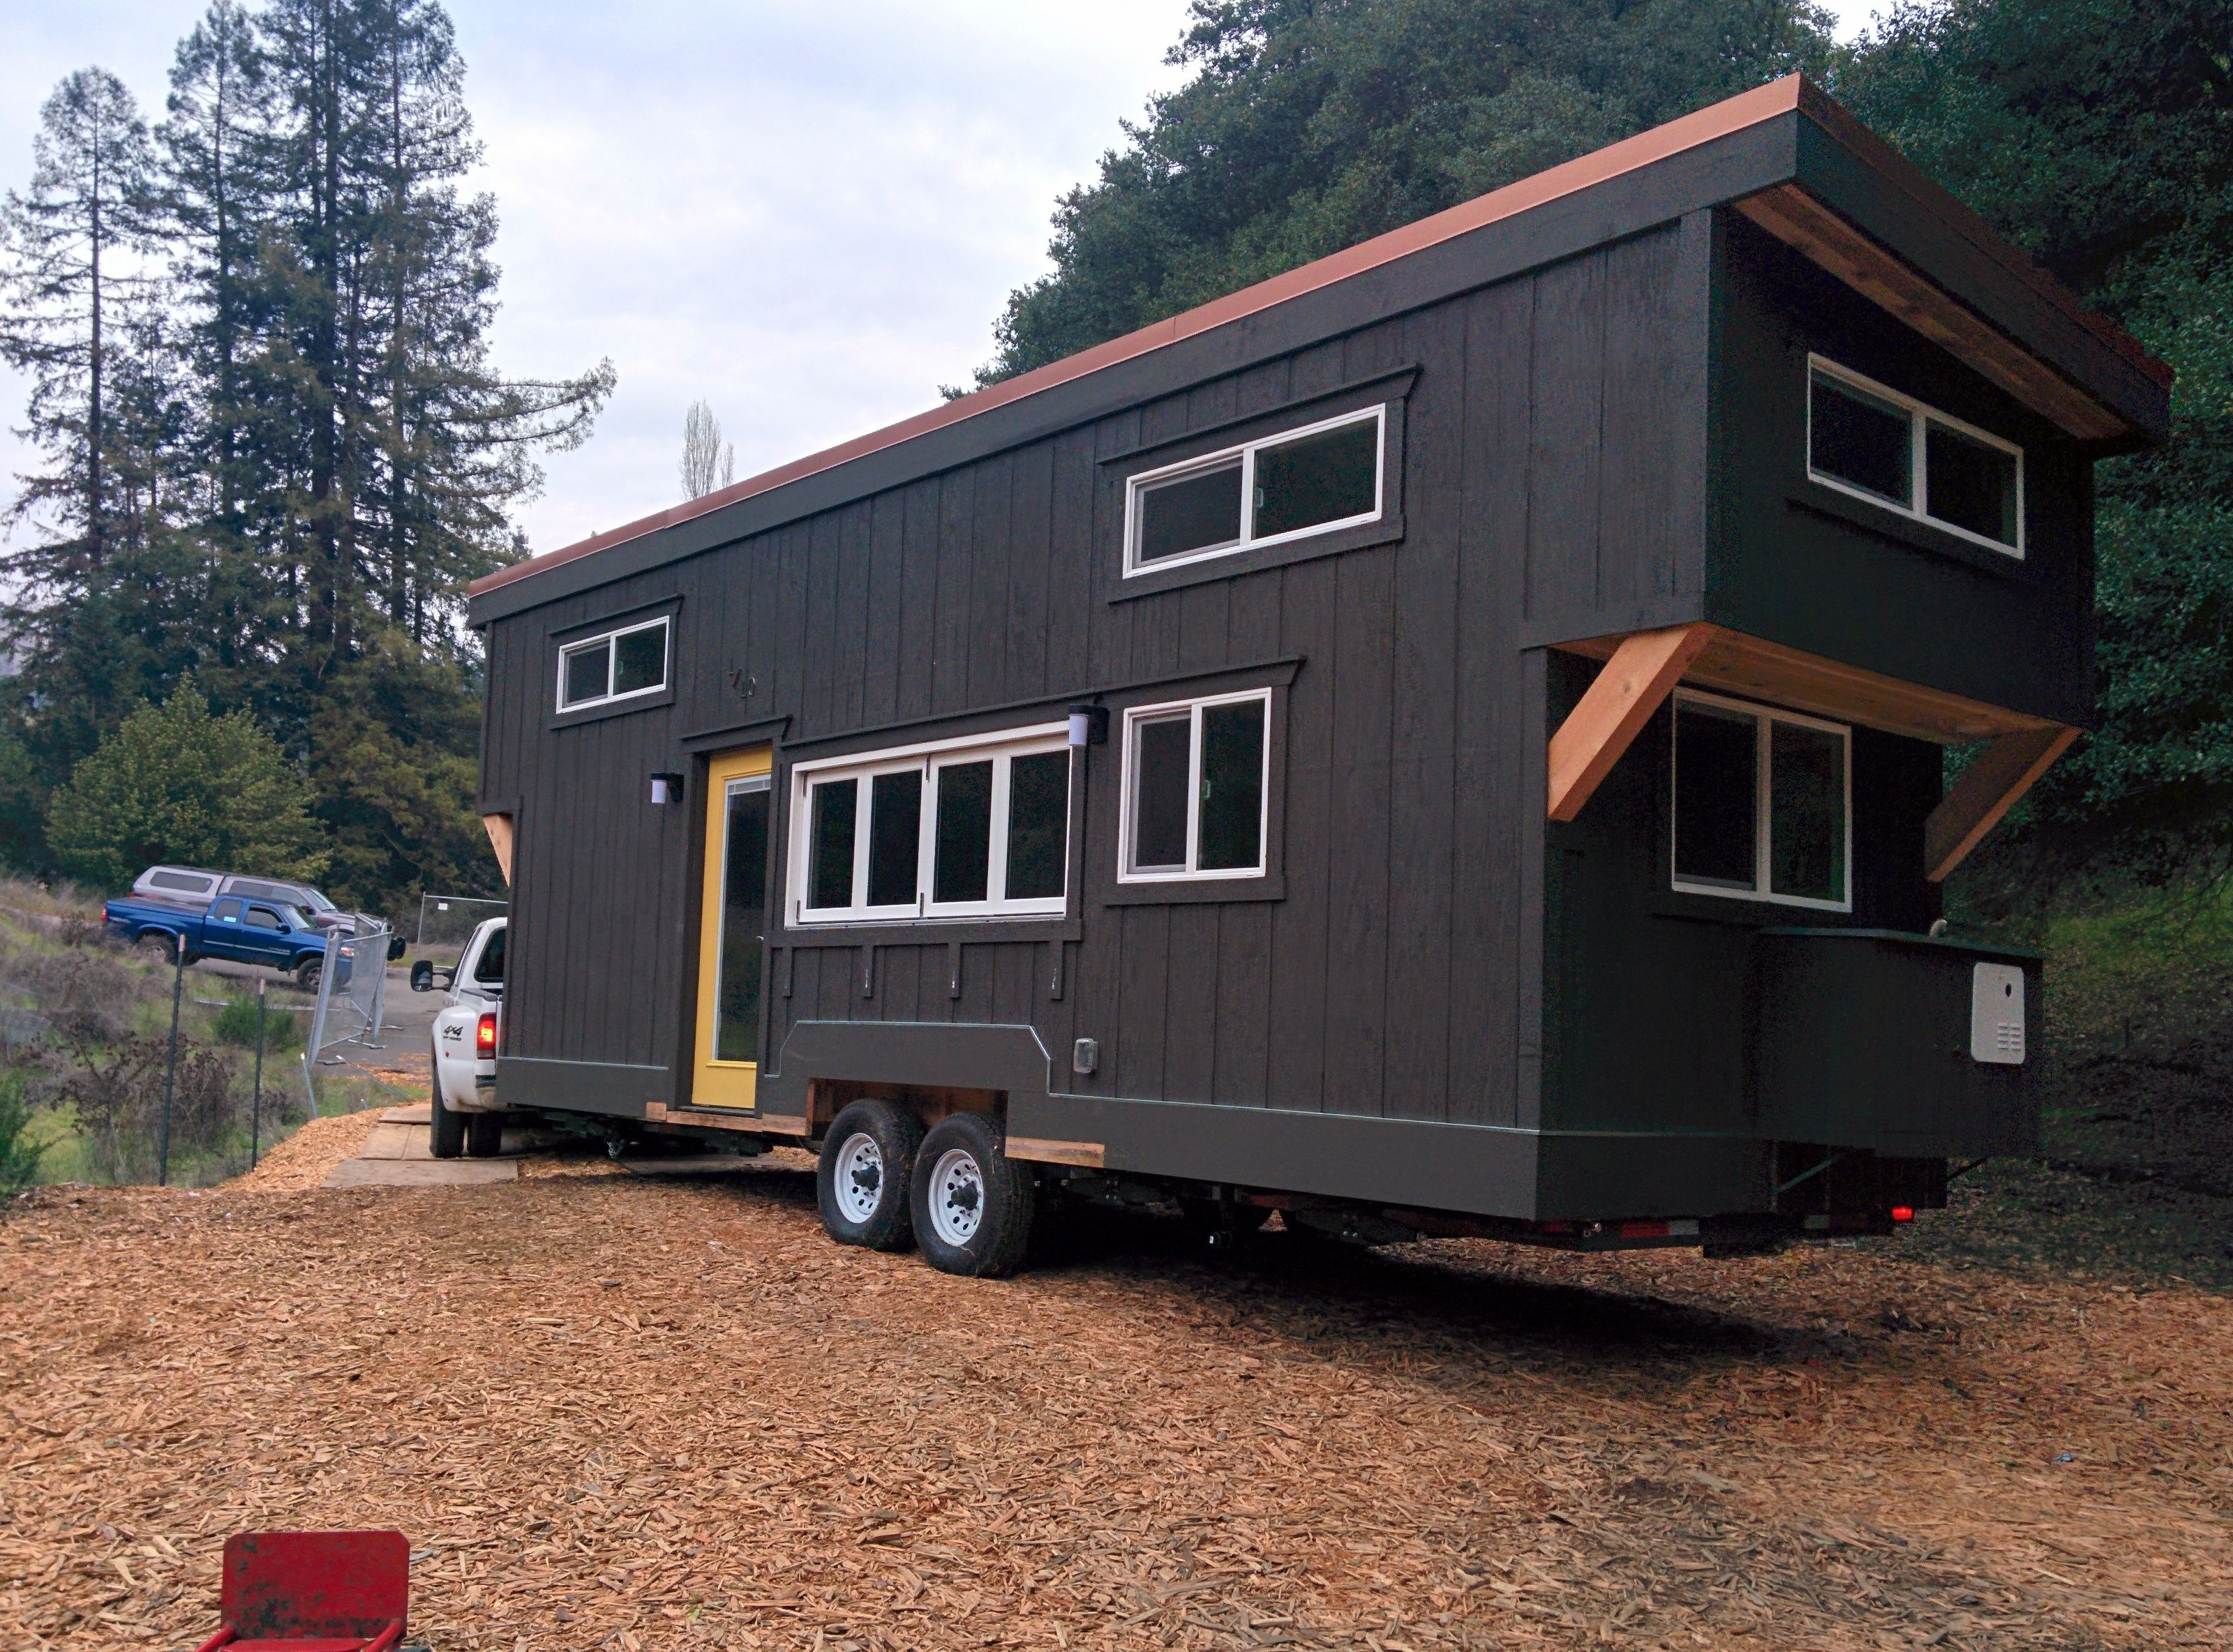 Tiny houses on trailers for sale - 17 Best 1000 Images About Tiny House On Wheels On Pinterest Tiny